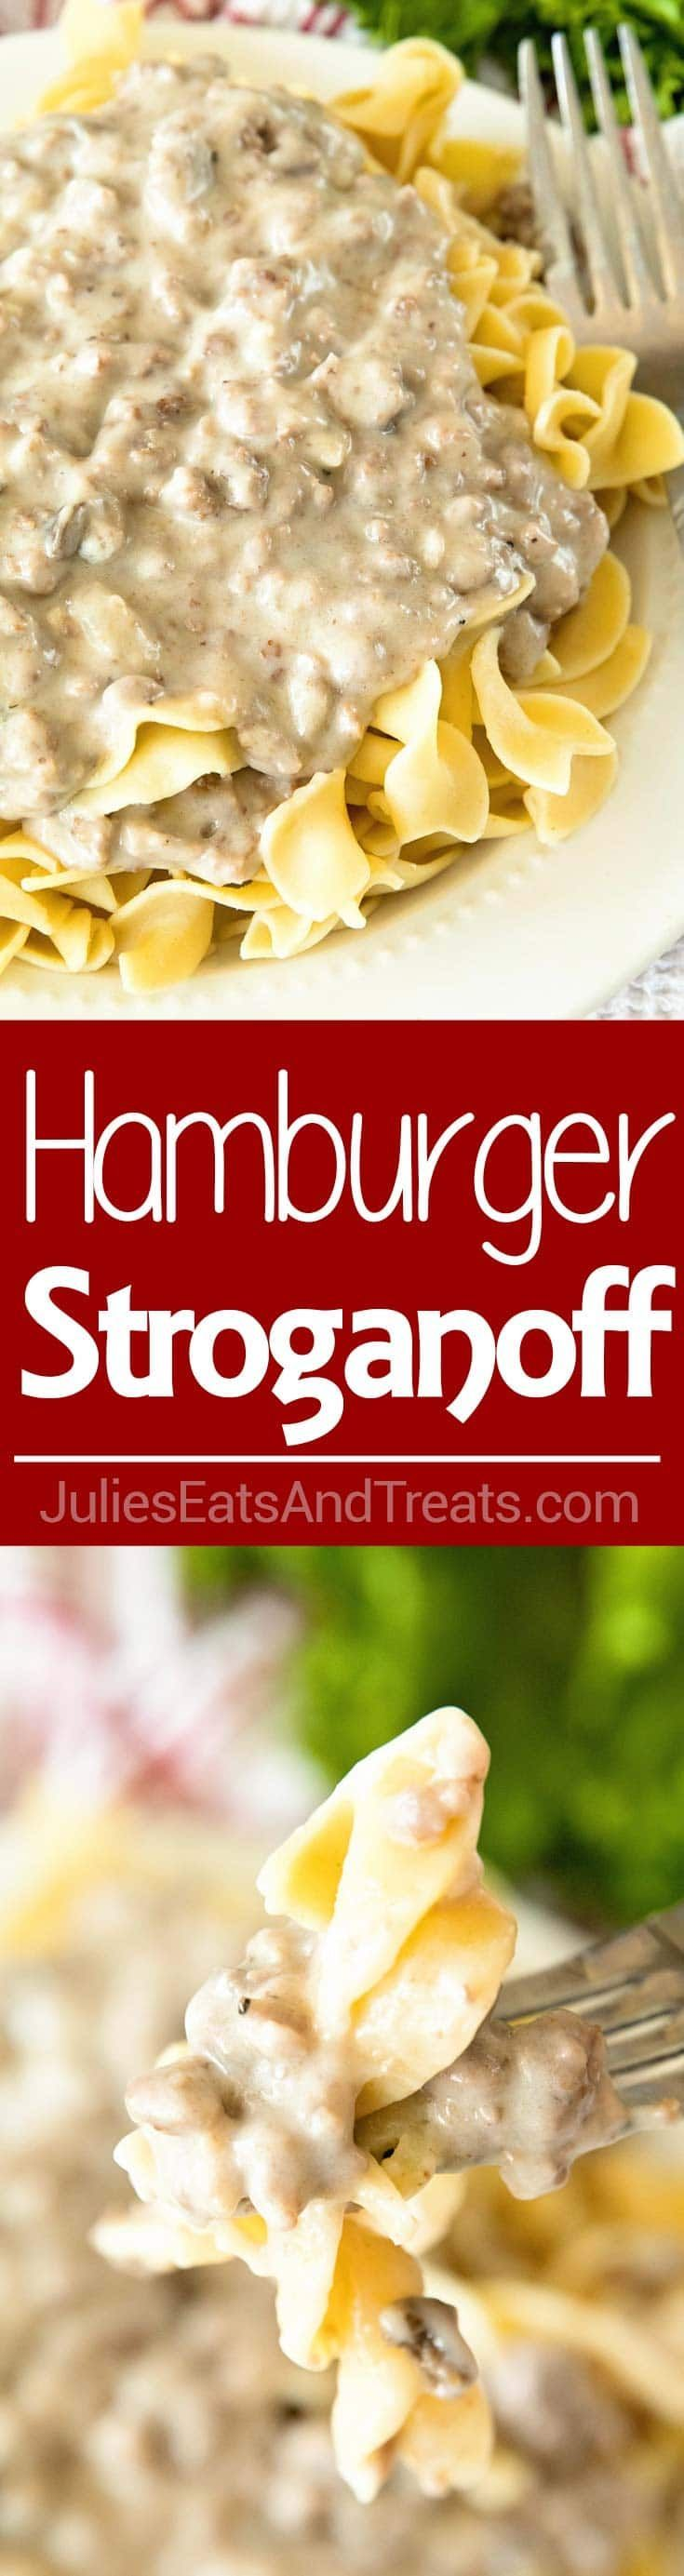 Hamburger Stroganoff ~ An easy weeknight supper of Ground Beef Stroganoff will put smiles on the whole family's faces including Mom's!